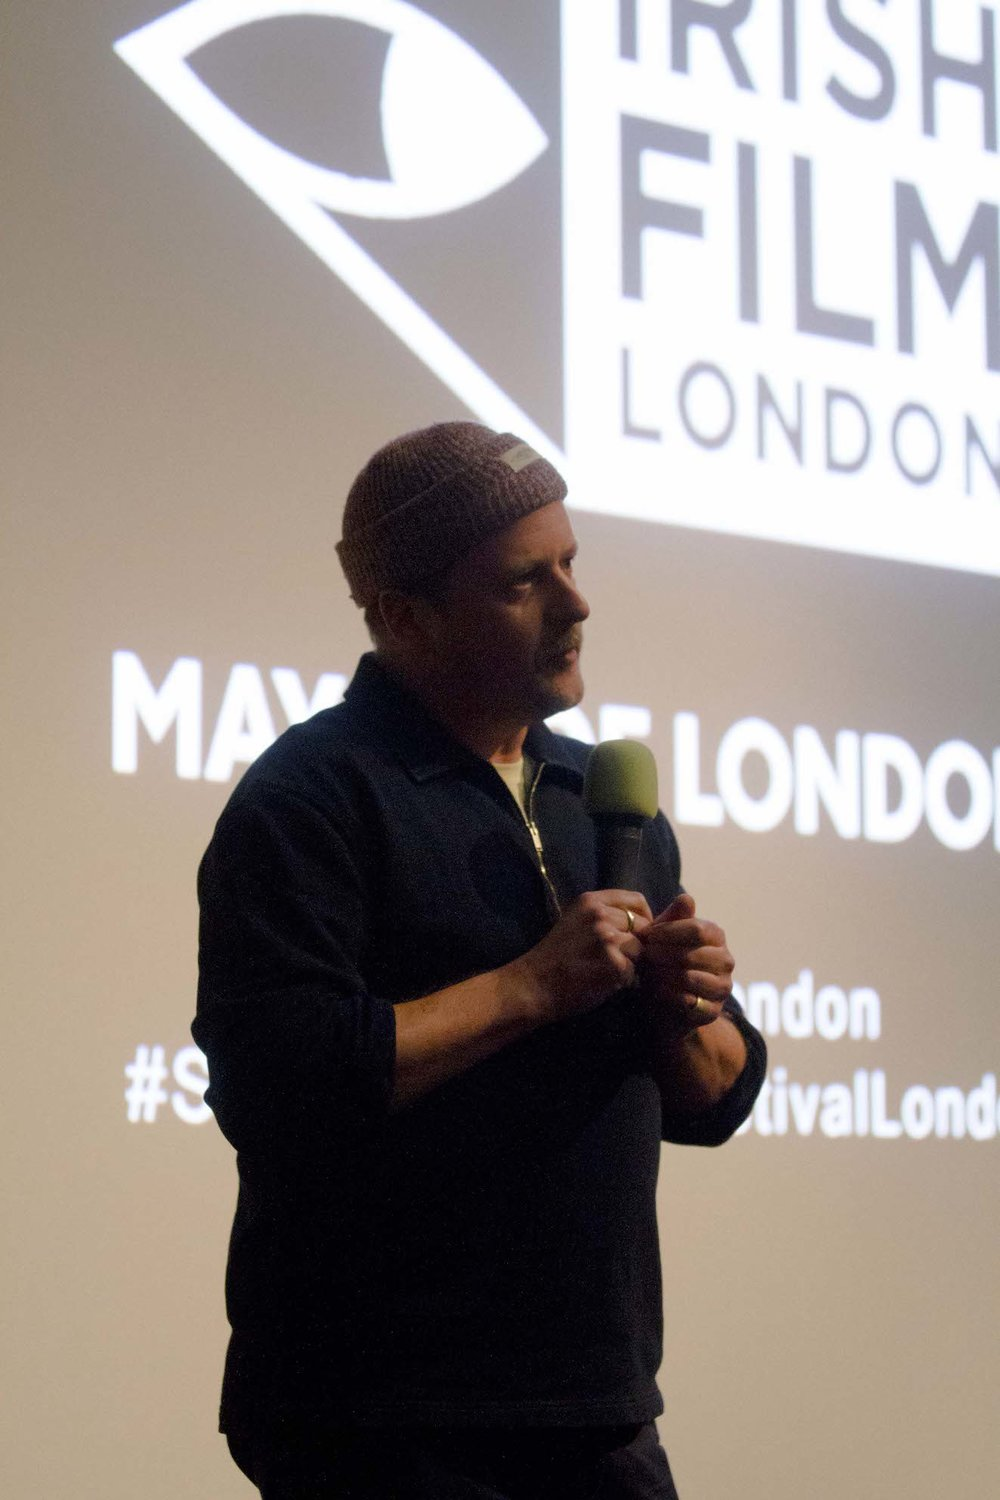 Irish Film London - John Butler at the St. Patrick's Film Festival London 2019